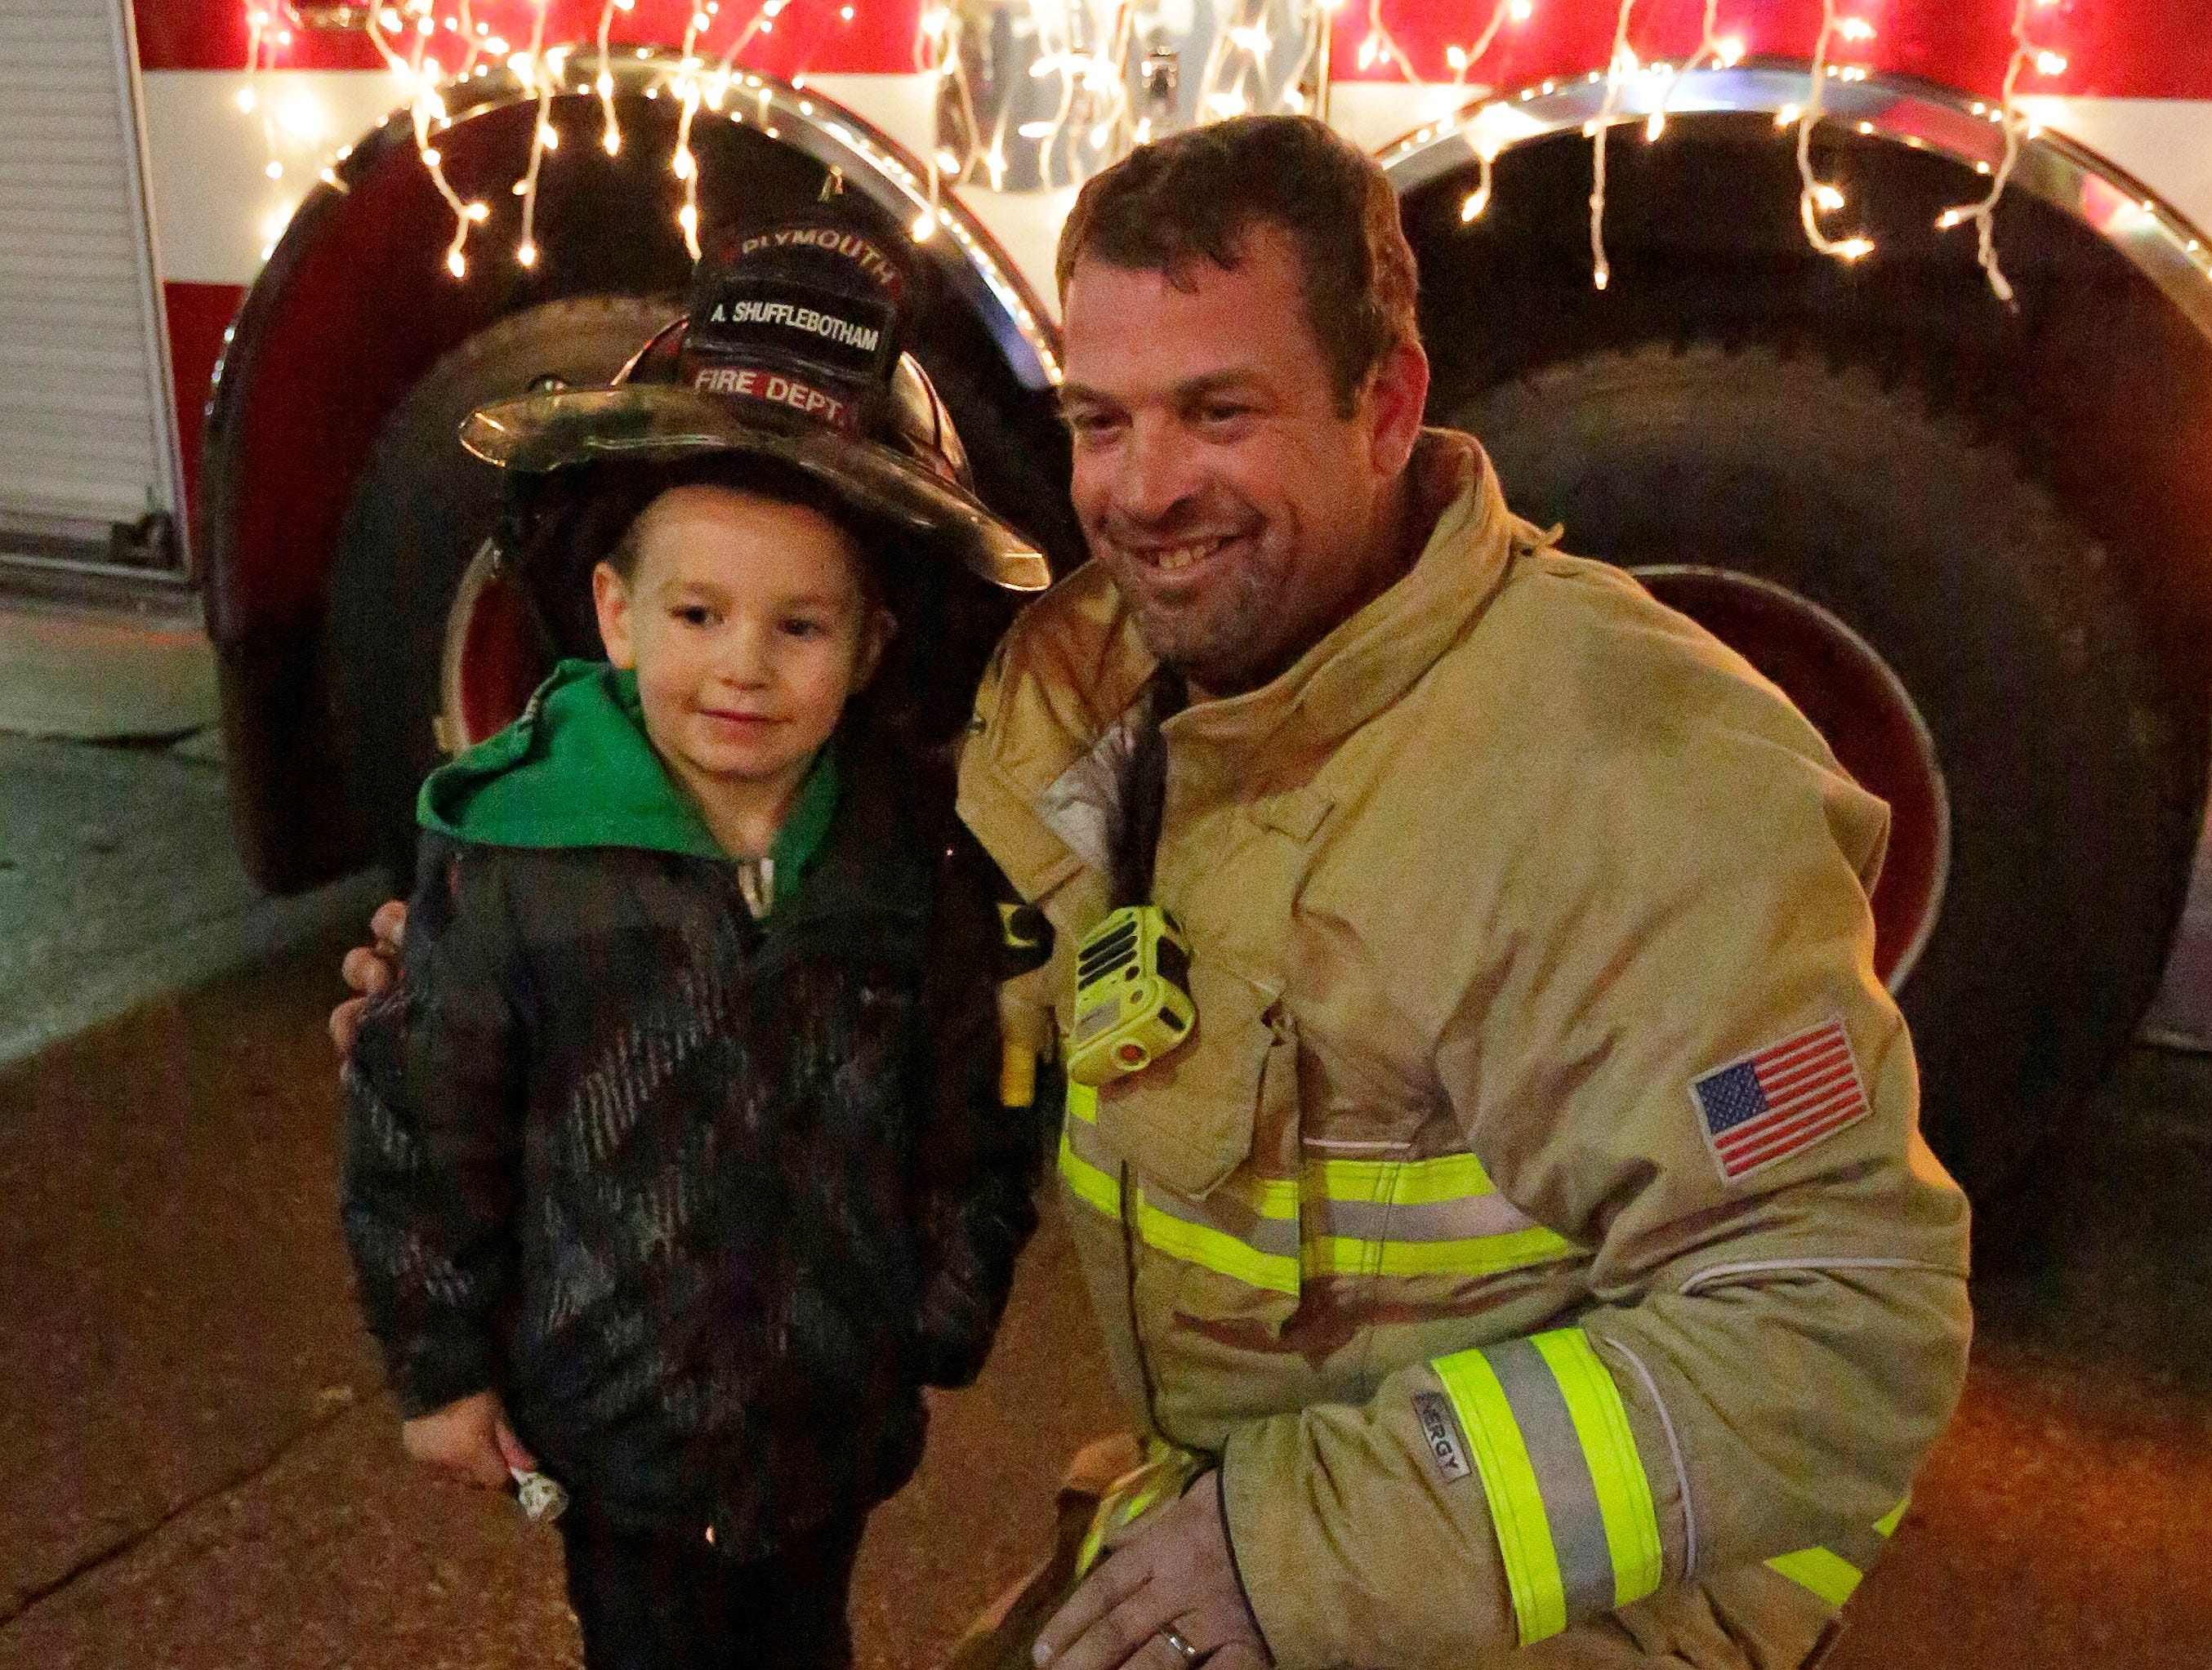 Finnegan Brusky, 5, of Plymouth poses with Plymouth firefighter Andrew Shufflebotham following the Plymouth Christmas Parade, Friday, November 23, 2018, in Plymouth, Wis.